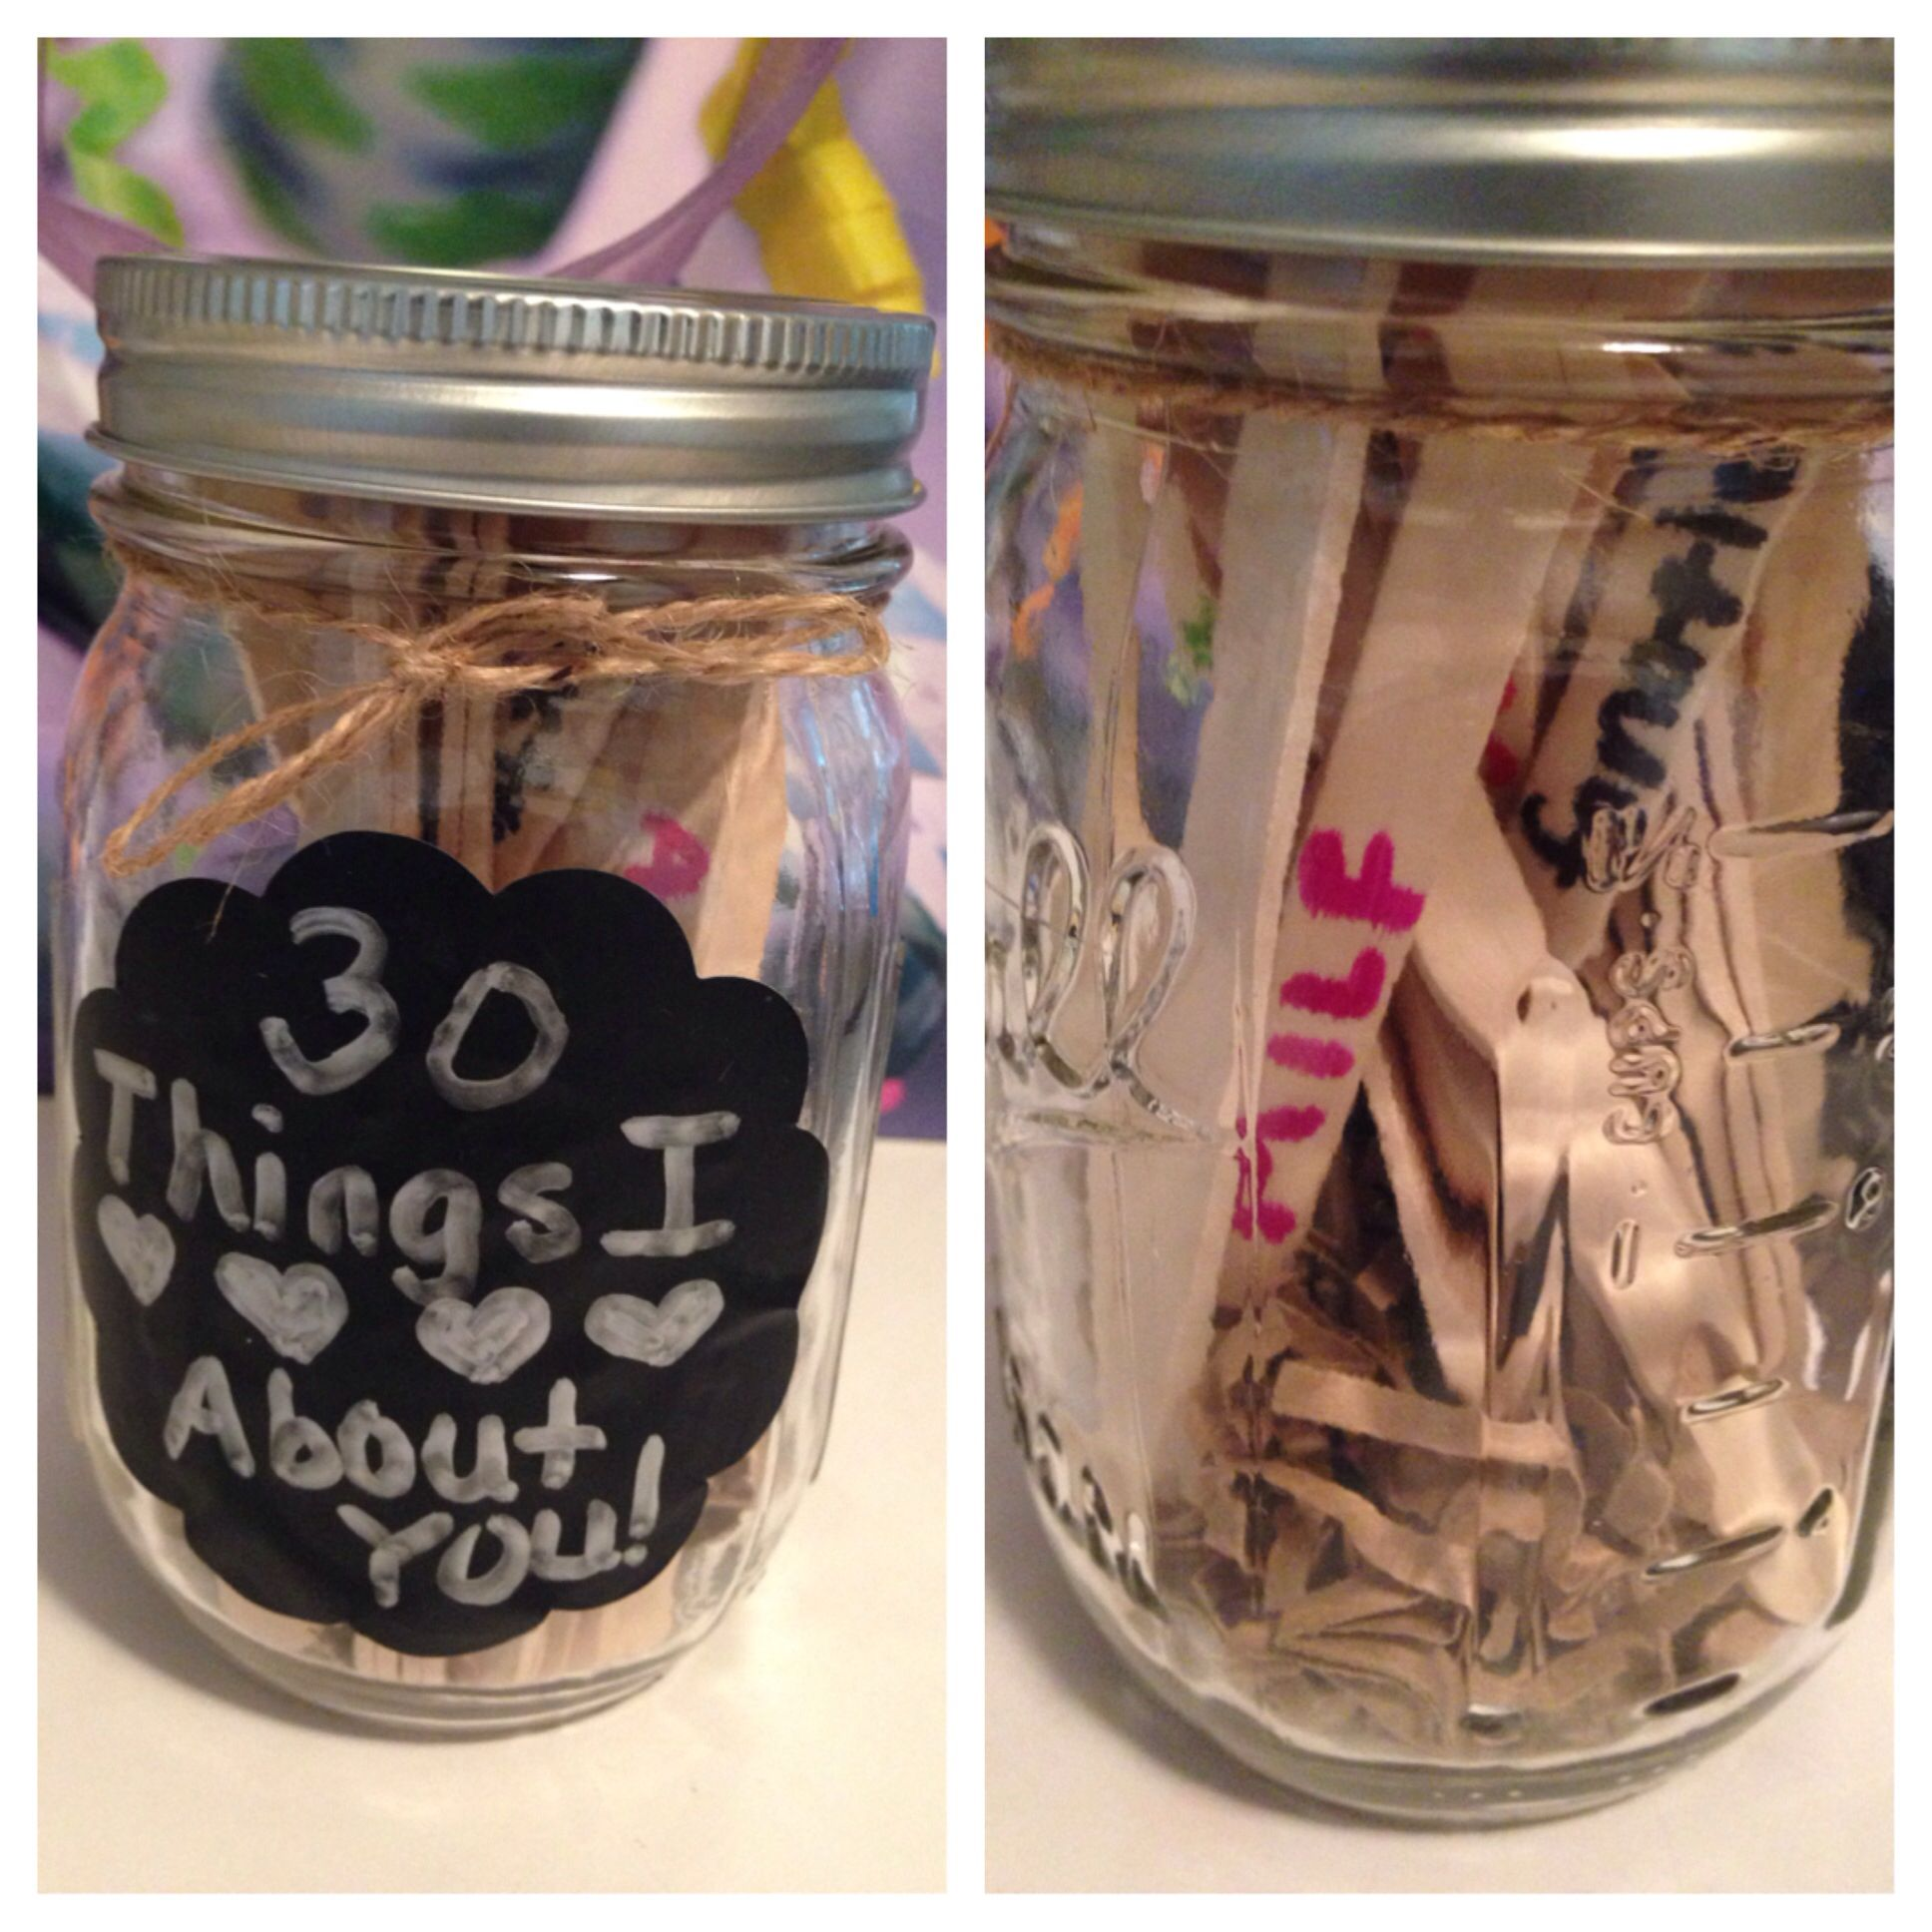 Easy Gift Idea 30 Things I Love About You This Was For A 30th